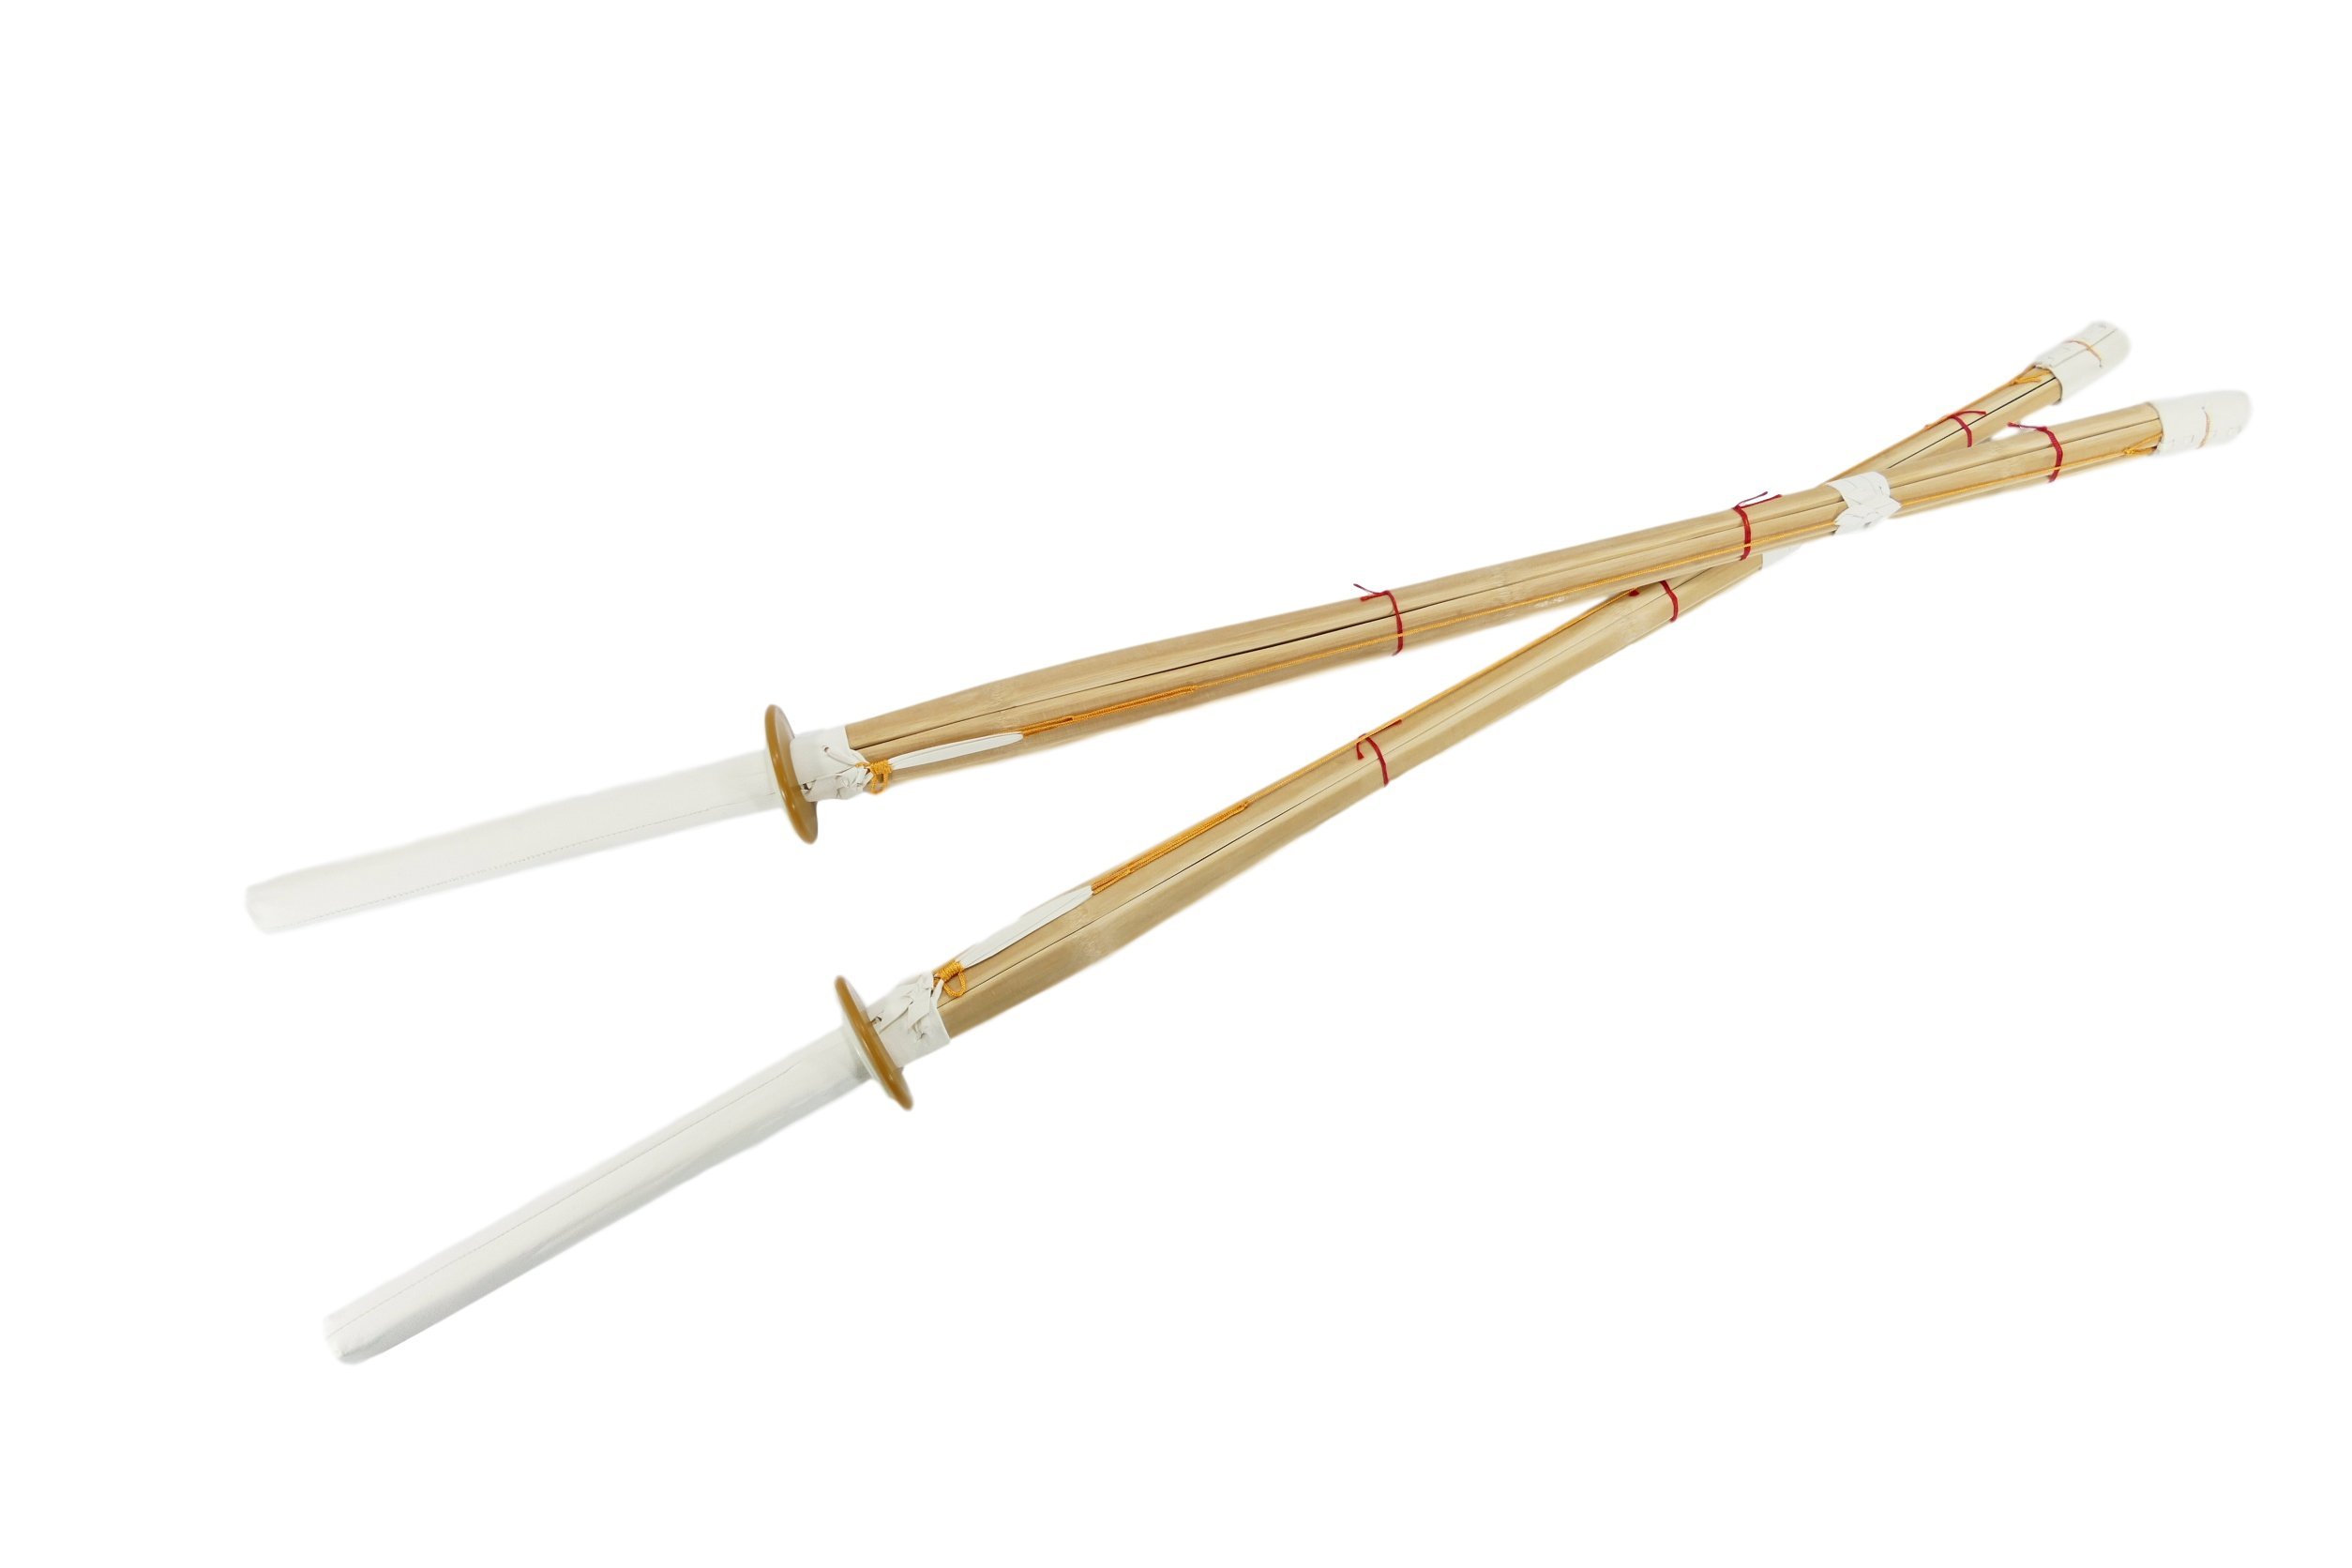 44'' Shinai Bamboo Swords for Kendo Practice & Competition - Pair of 2 by MAKOTO